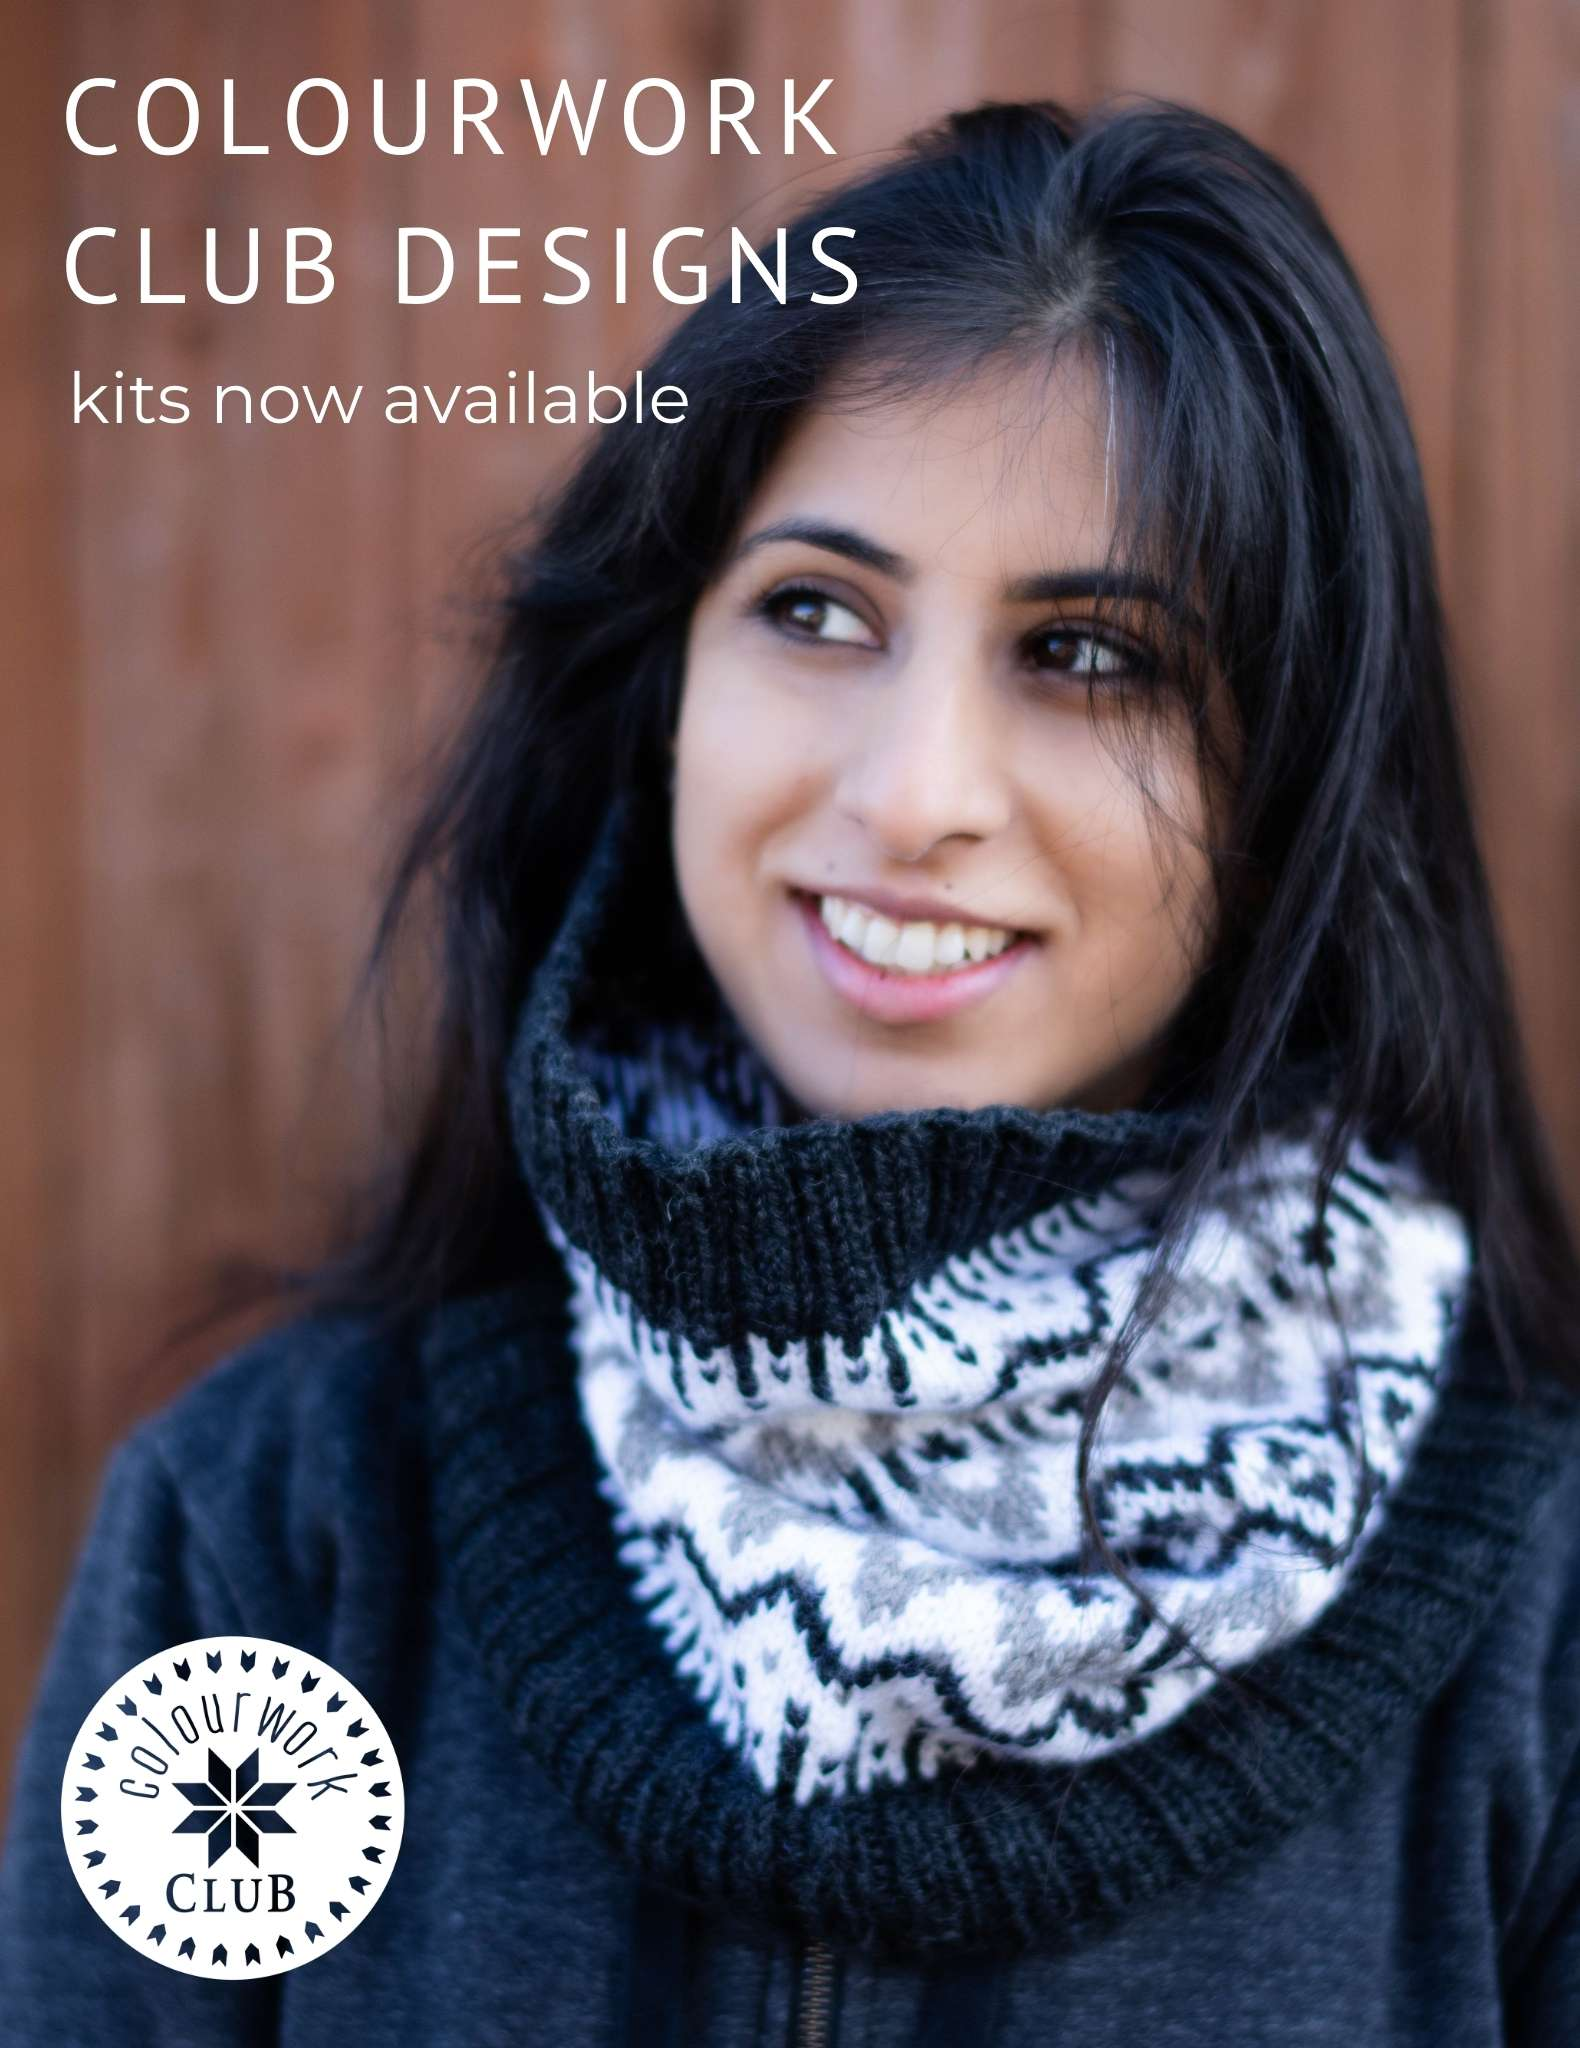 Our First Colourwork Club - Kits are now available!